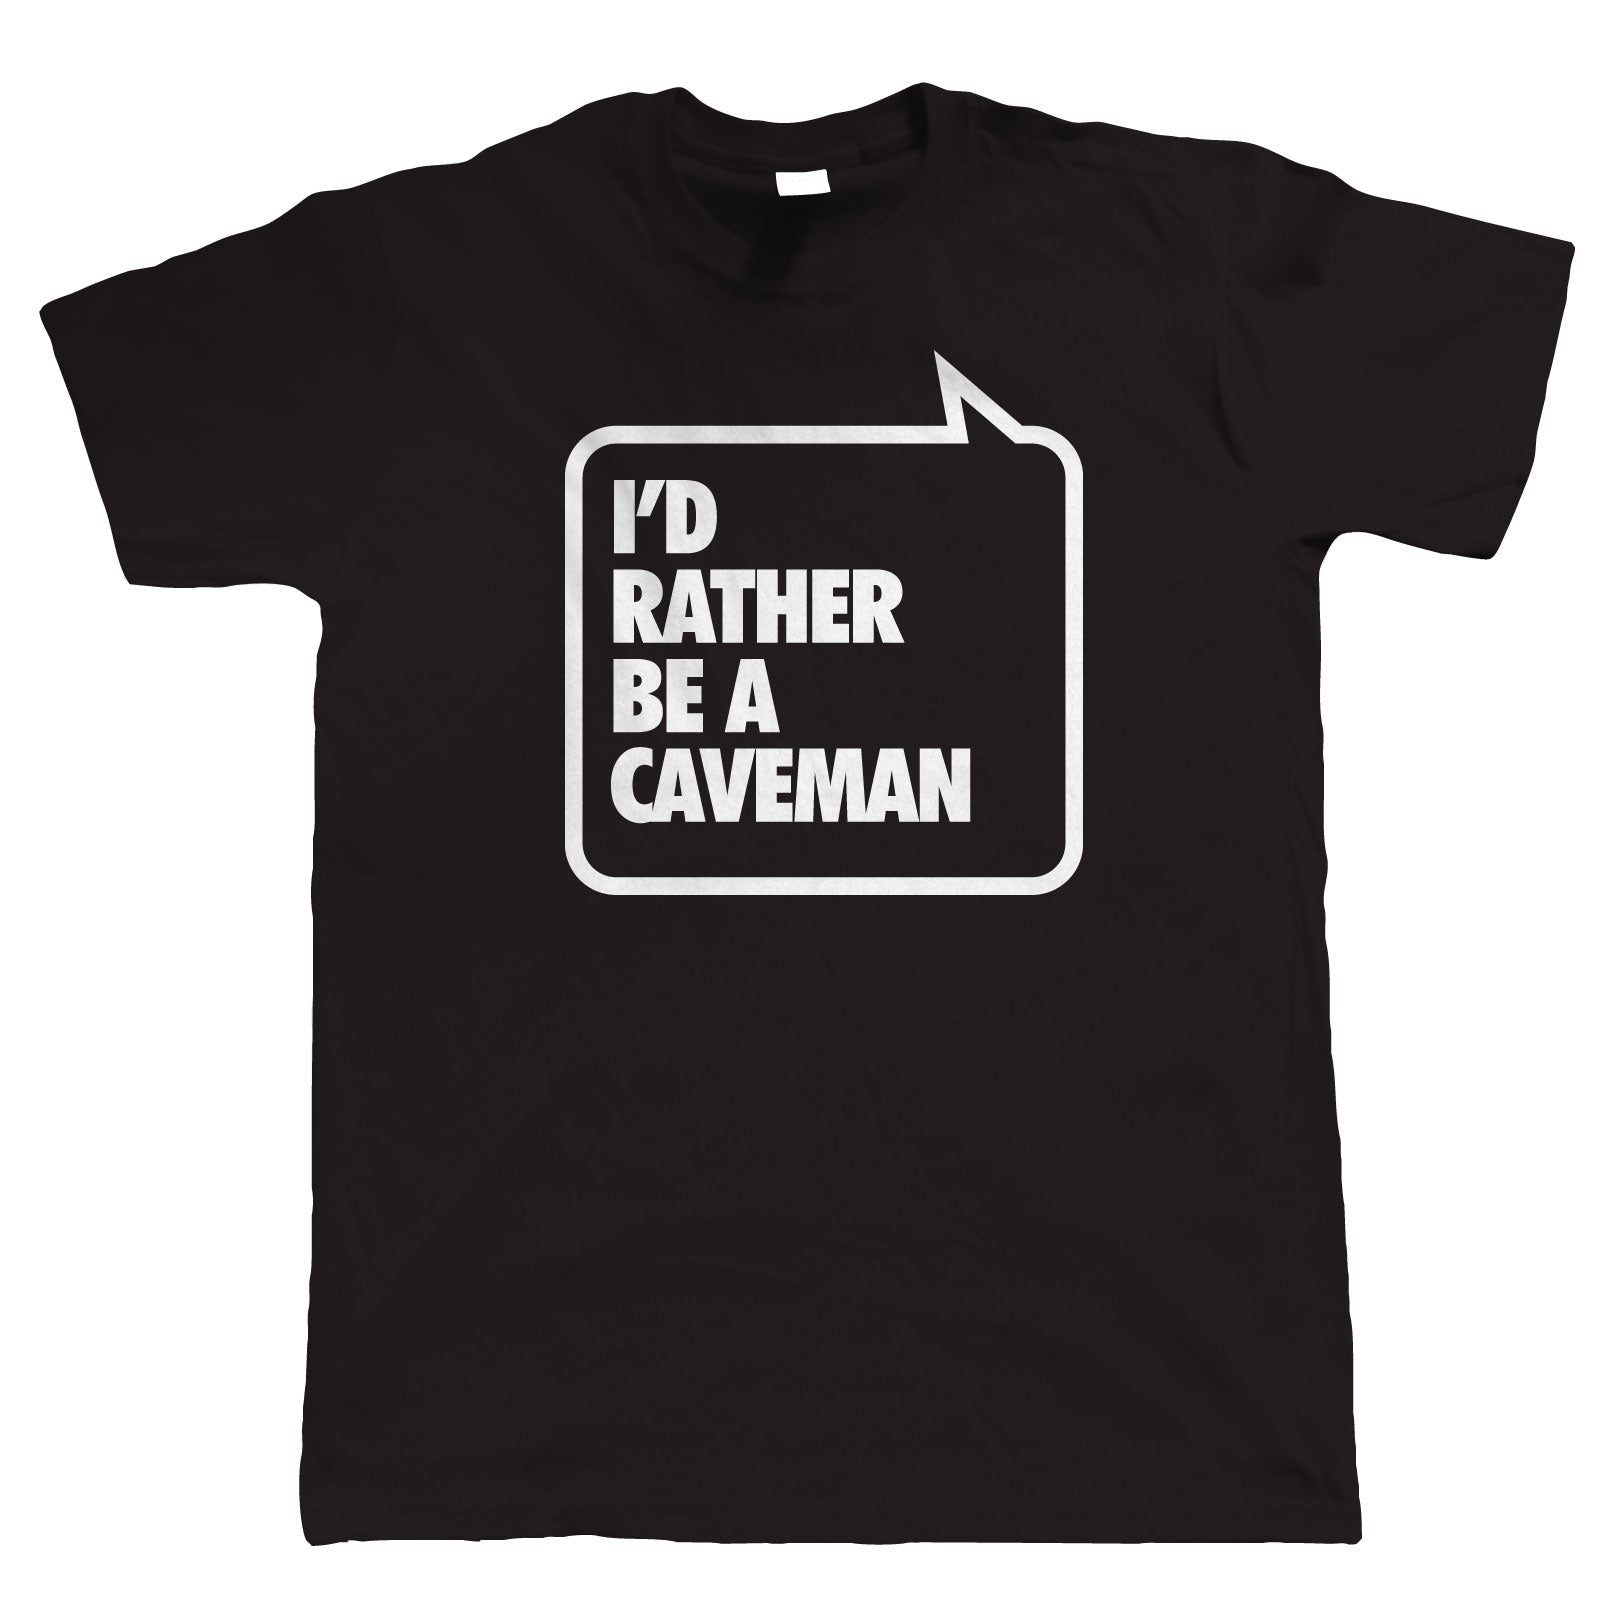 I'd Rather Be A Caveman, Mens Funny Caving Tshirt